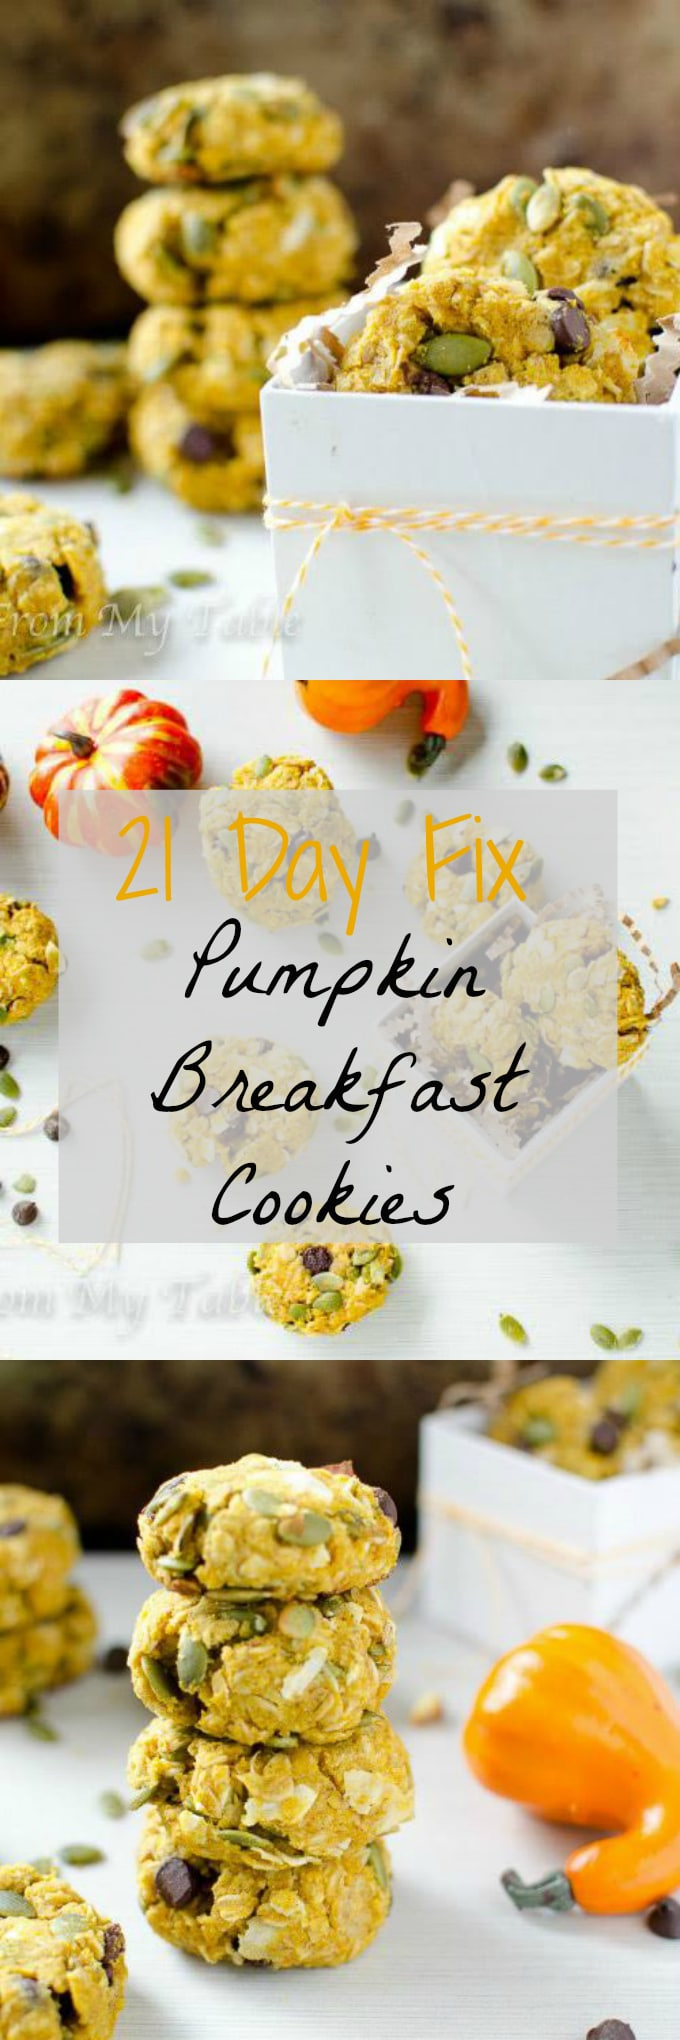 21 Day Fix Pumpkin Cookies